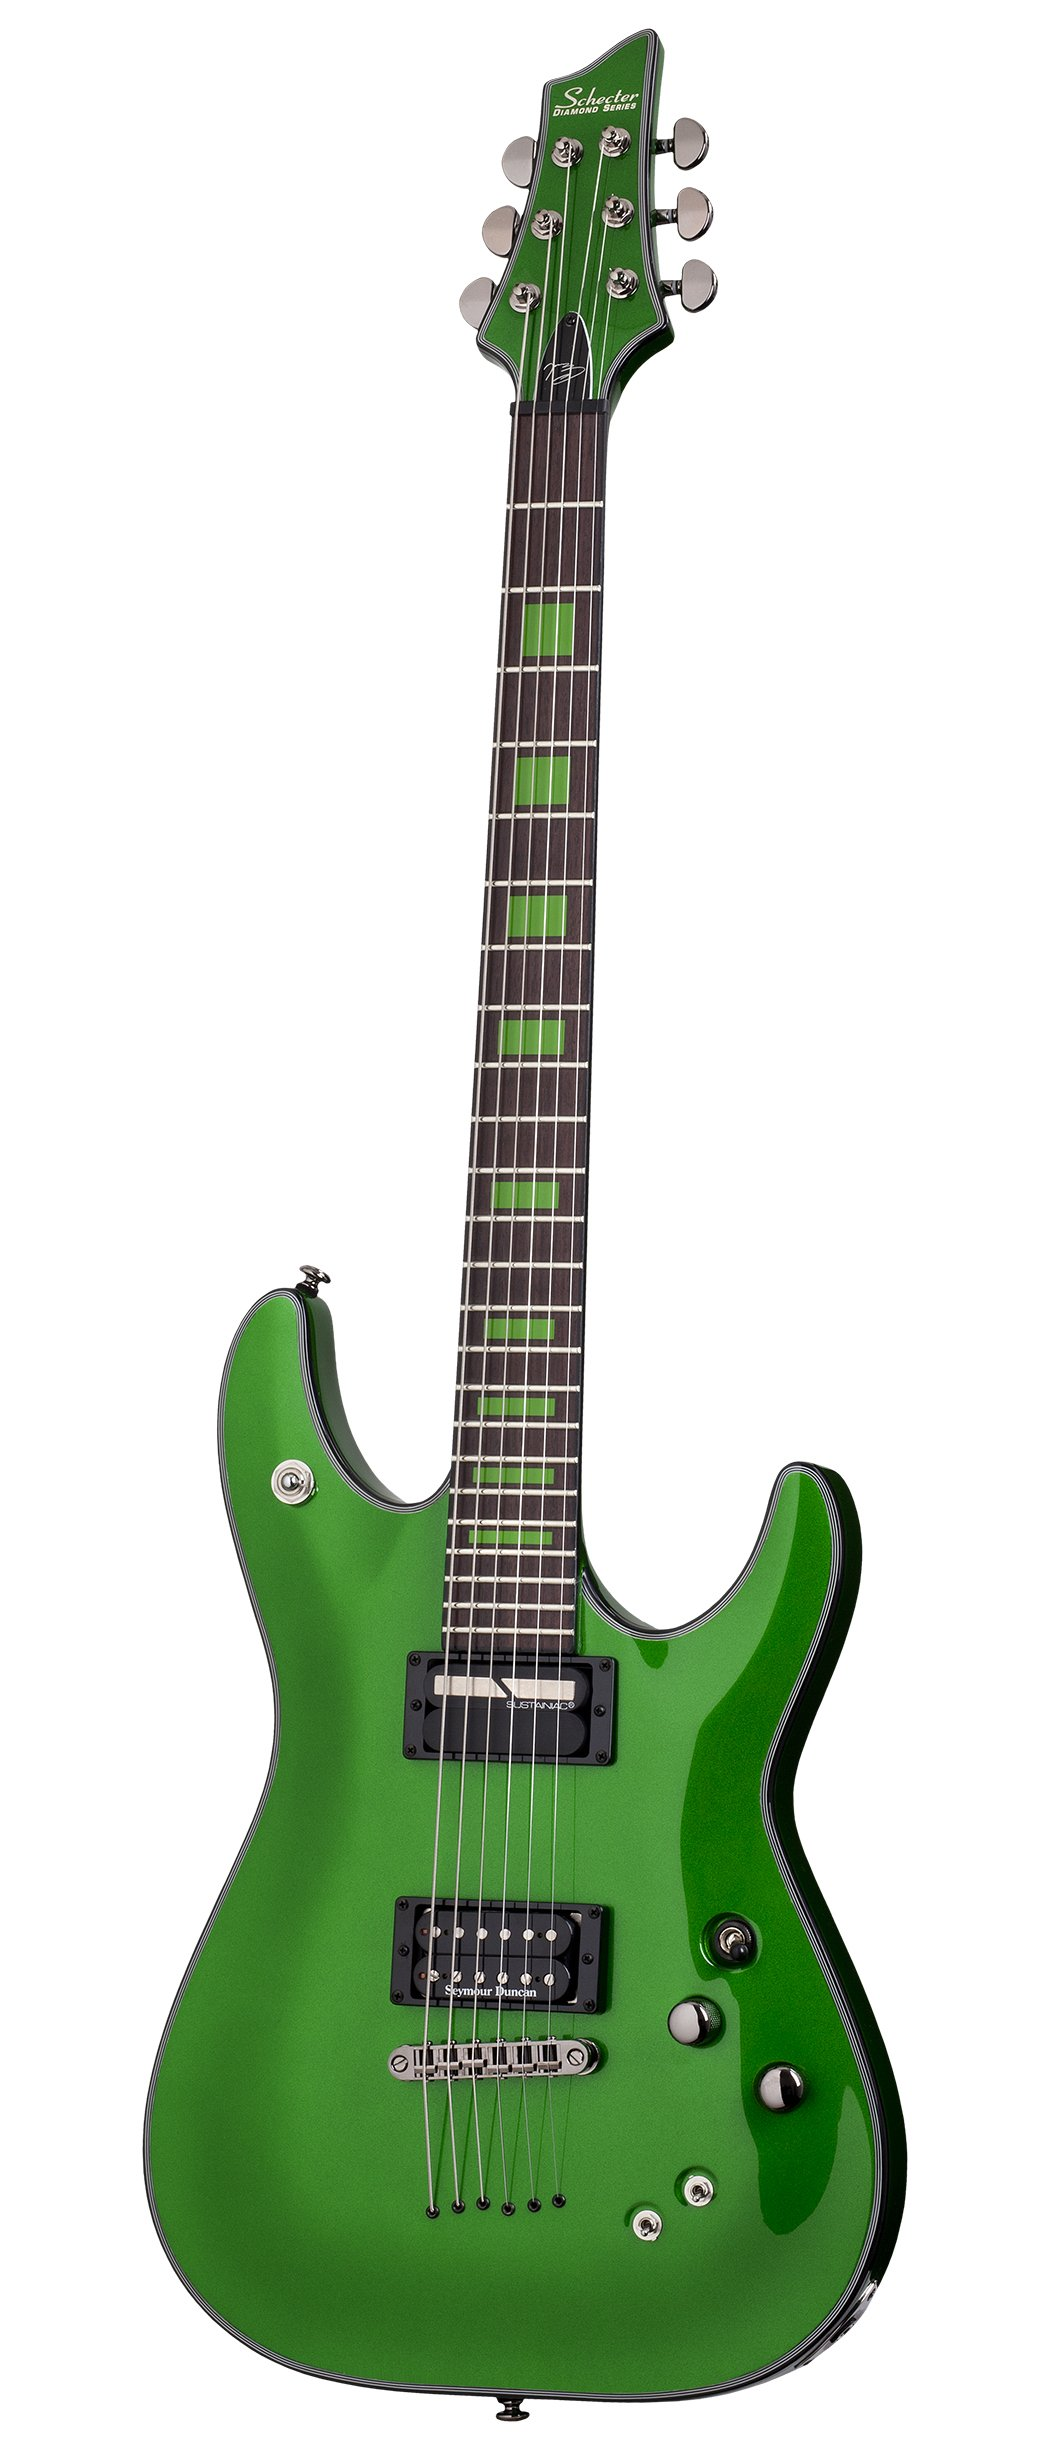 Cheap Schecter 221 Kenny Hickey Signature C-1 EX Artist Series Solid-Body Electric Guitar Black Friday & Cyber Monday 2019